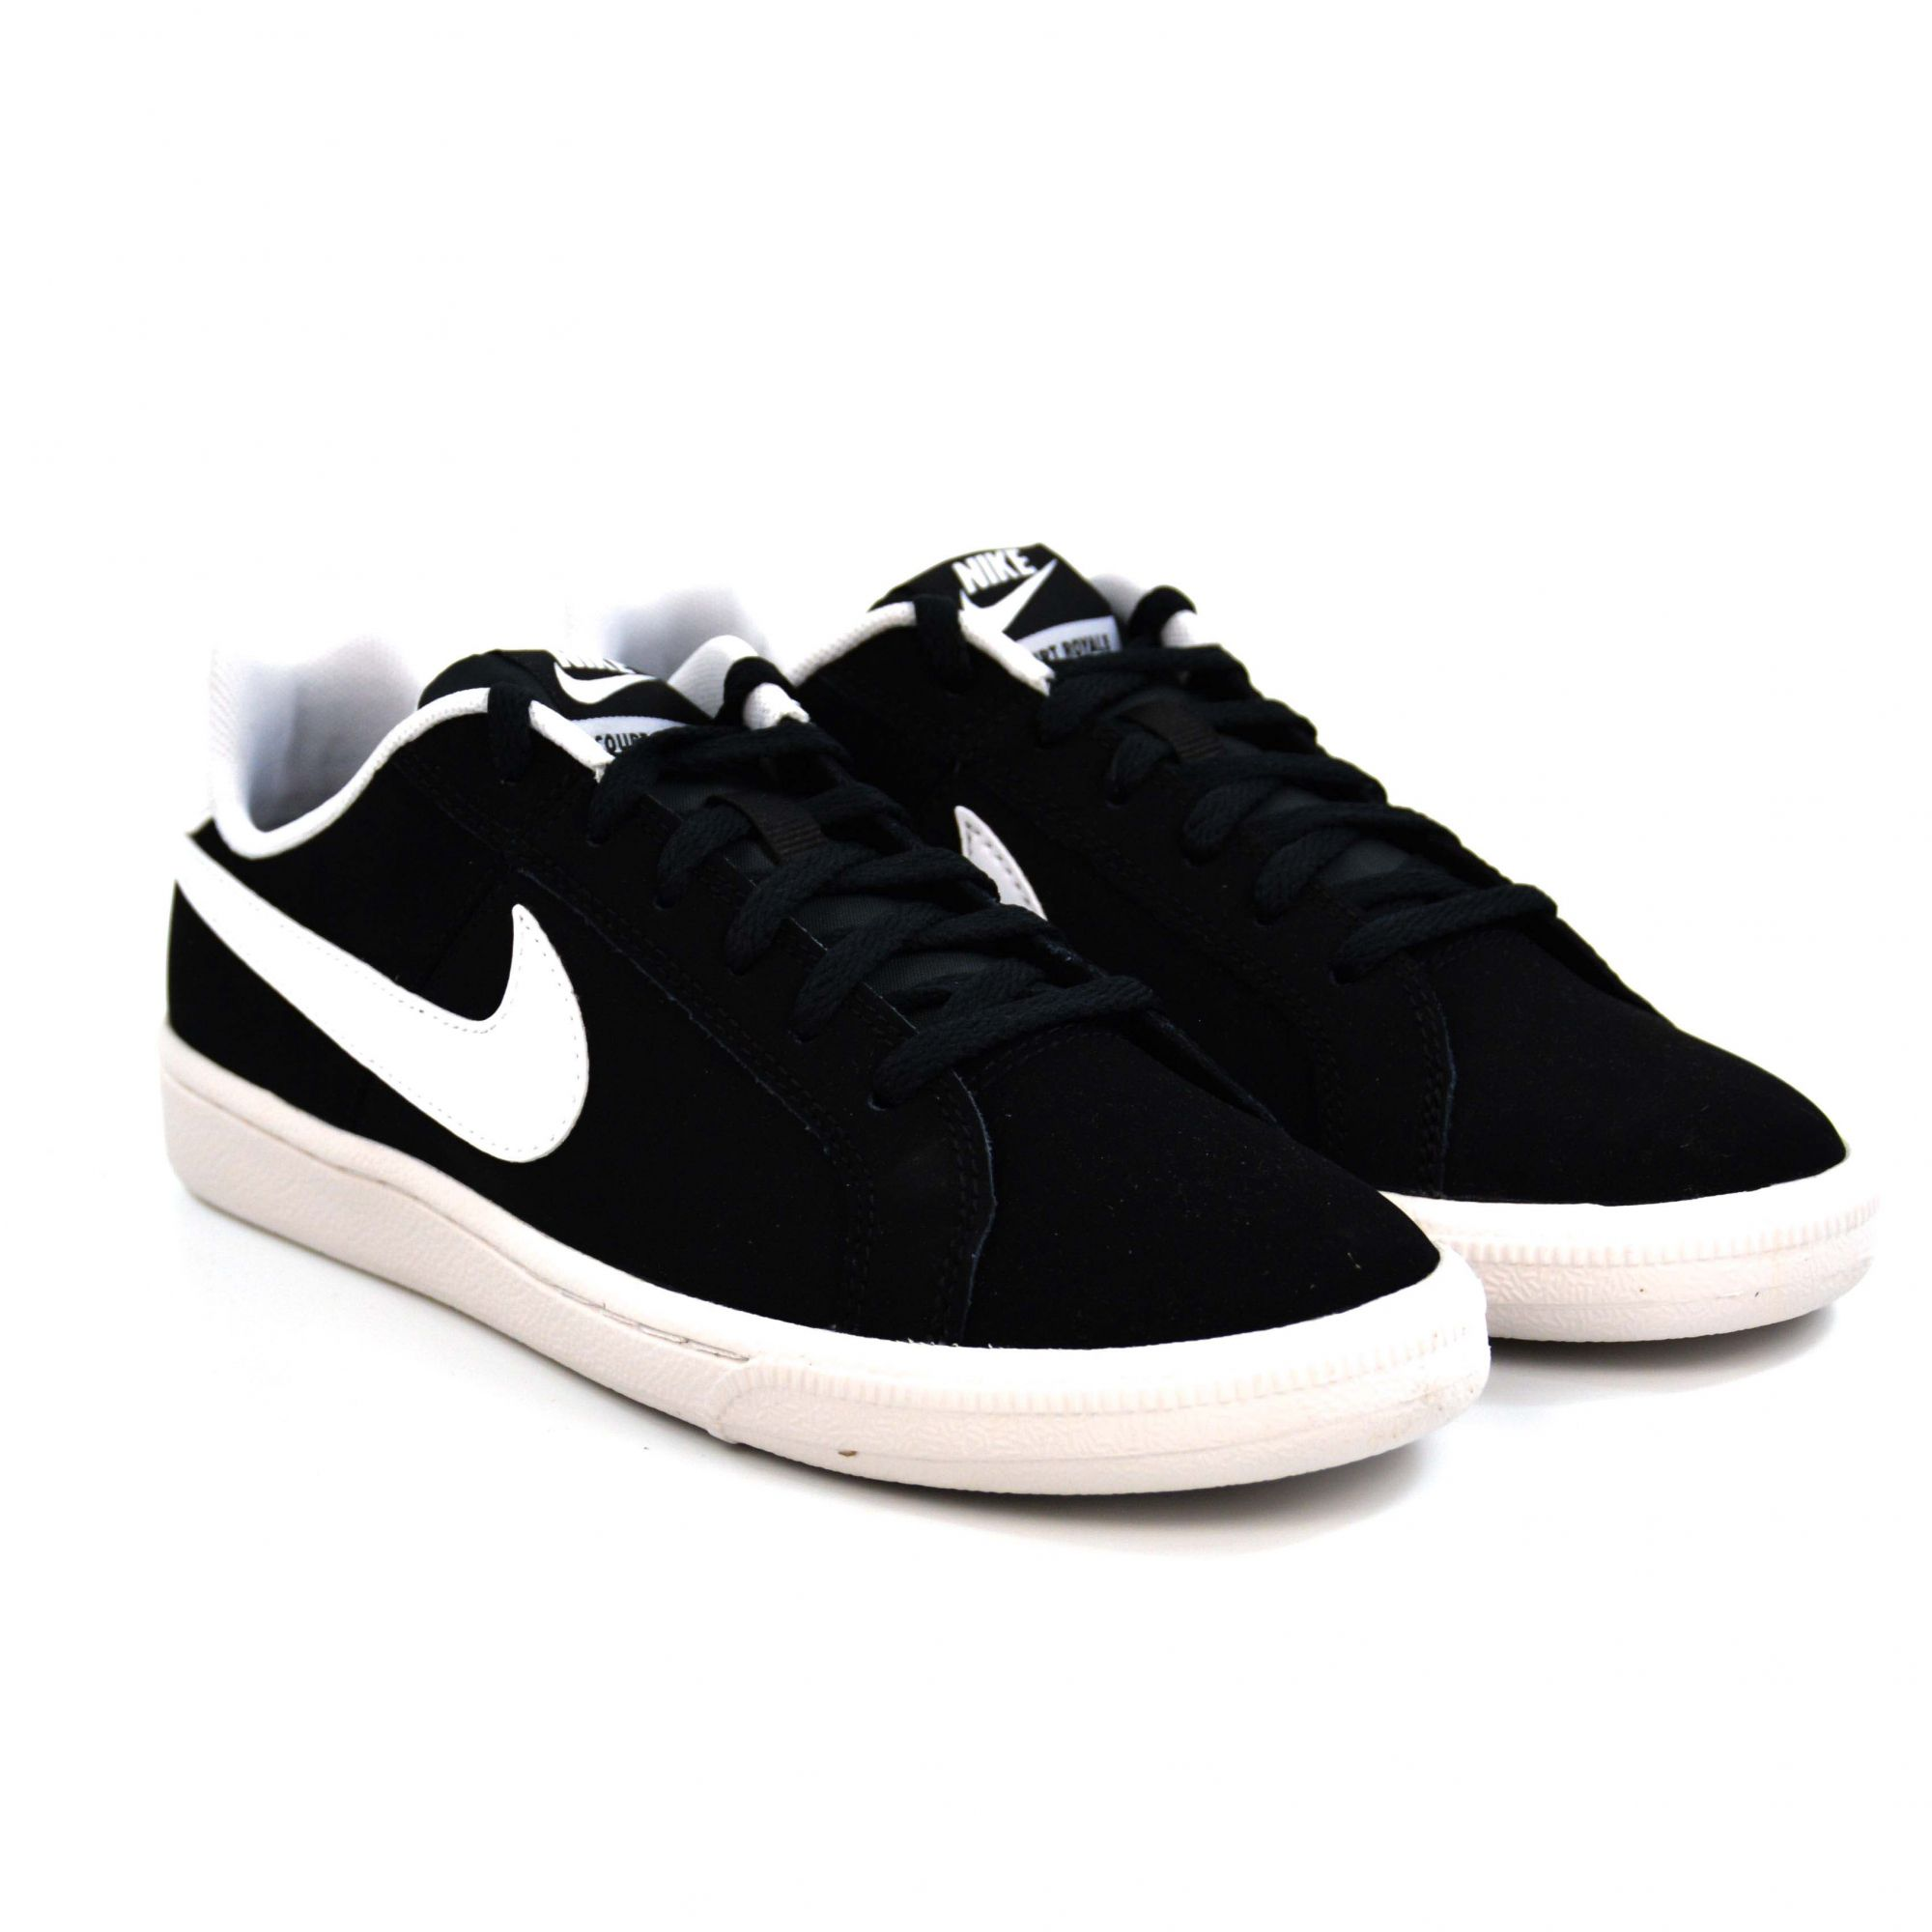 TENIS JUVENIL COURT ROYALE BLACK/WHITE NIKE 013537